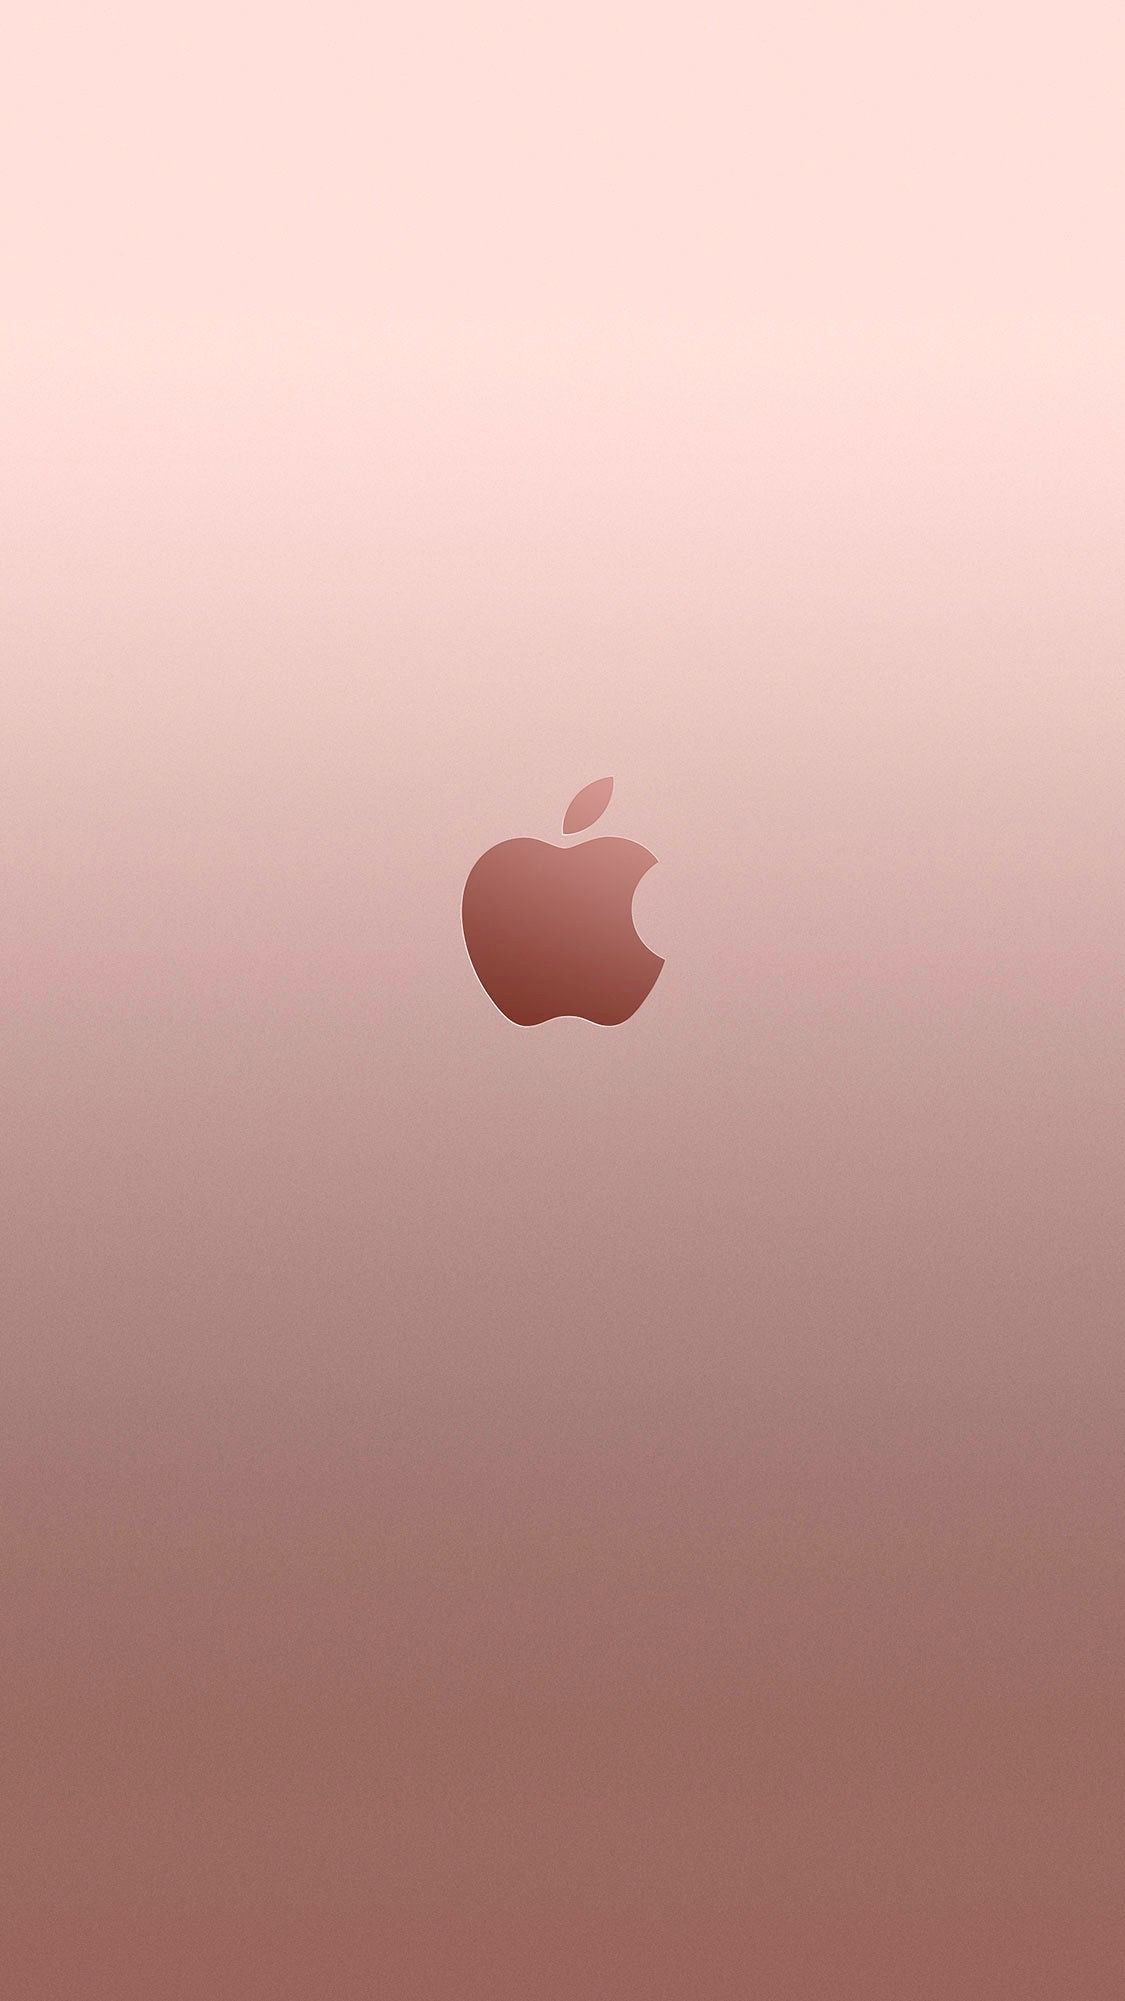 Apple Rose Gold Iphone Wallpaper Rose Gold Cute Wallpapers For